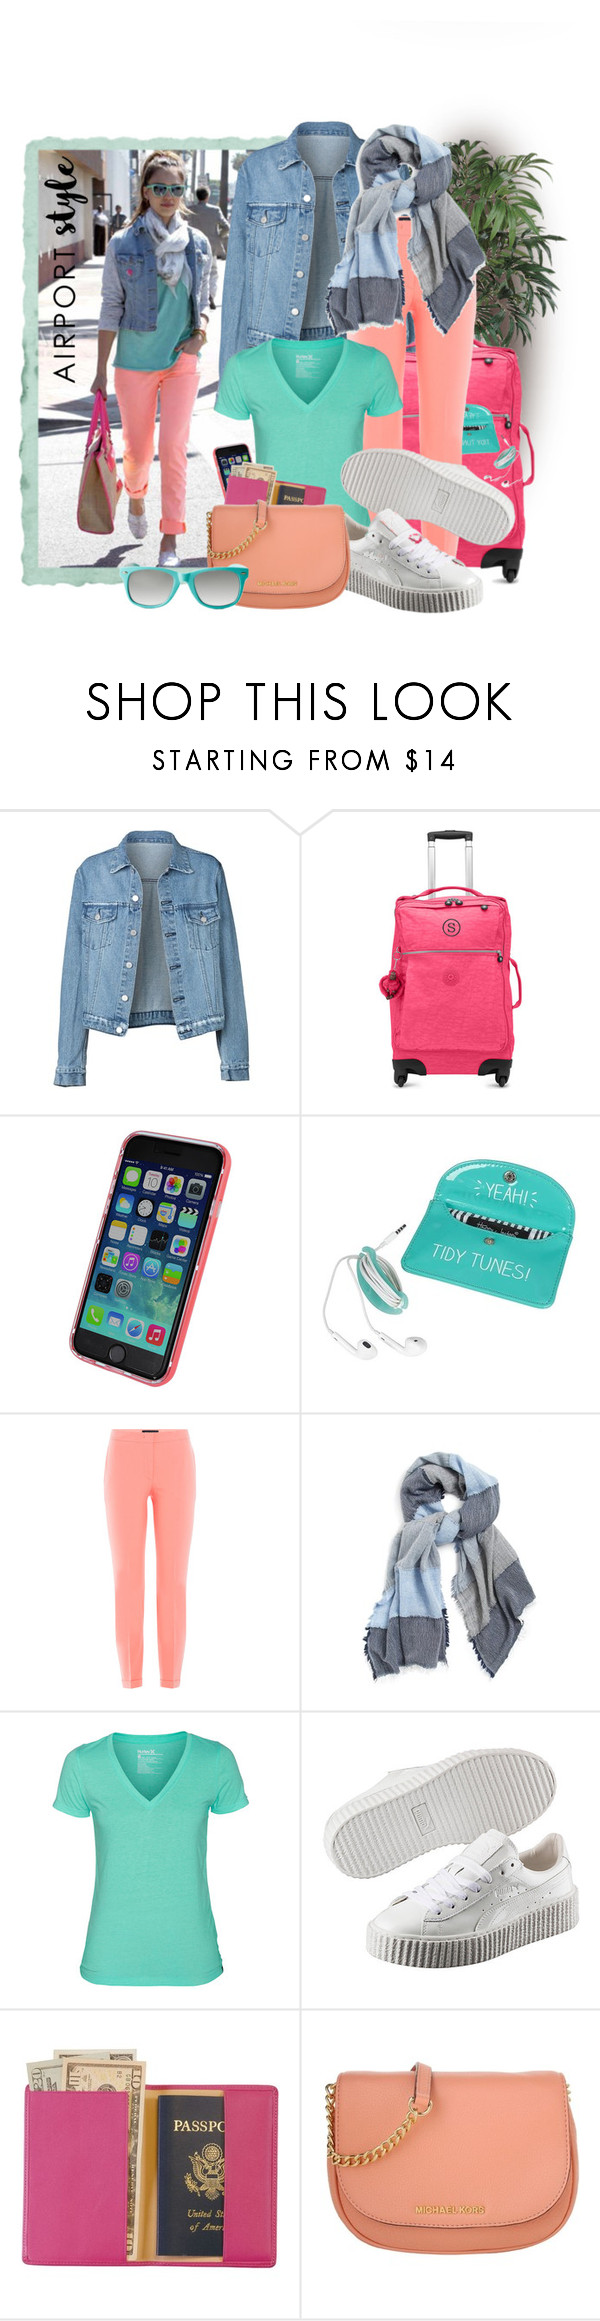 """""""A good way"""" by tasha1973 ❤ liked on Polyvore featuring INC International Concepts, Kipling, Piazza Sempione, Chelsey, Hurley, Puma, Royce Leather, Michael Kors and Red Camel"""